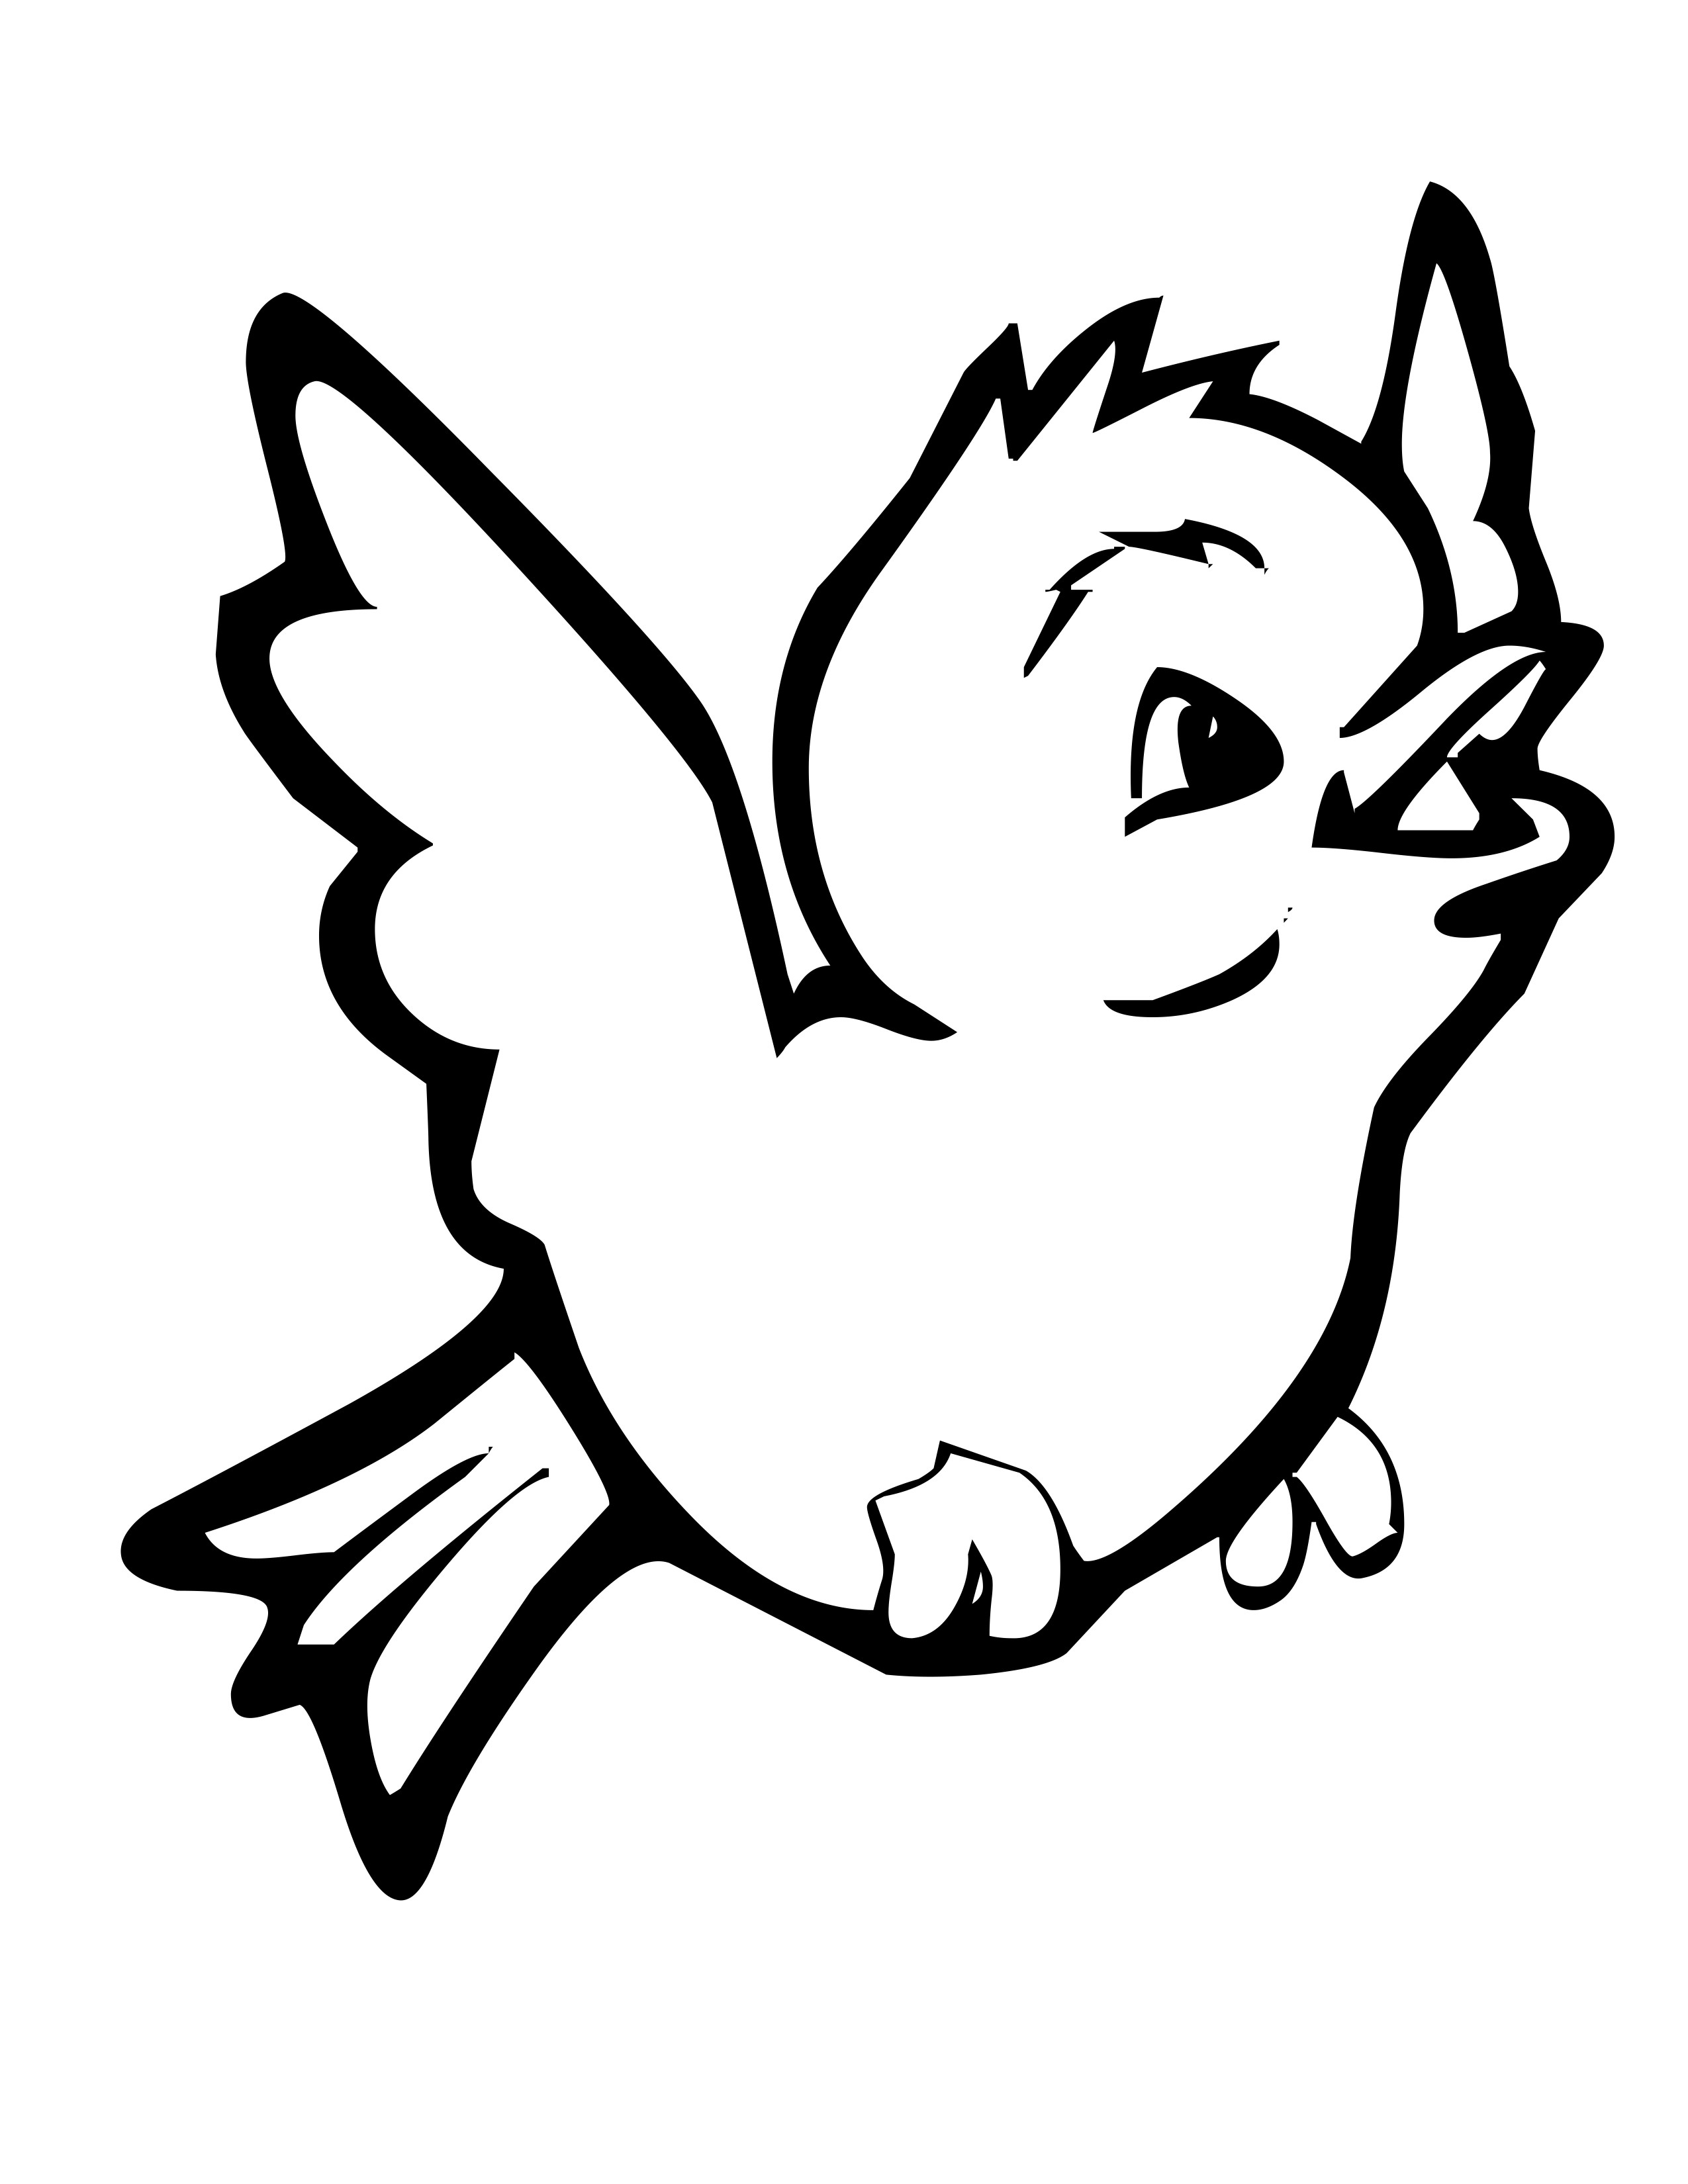 printable bird coloring pages cute bird coloring page for kids tsgoscom bird coloring printable pages